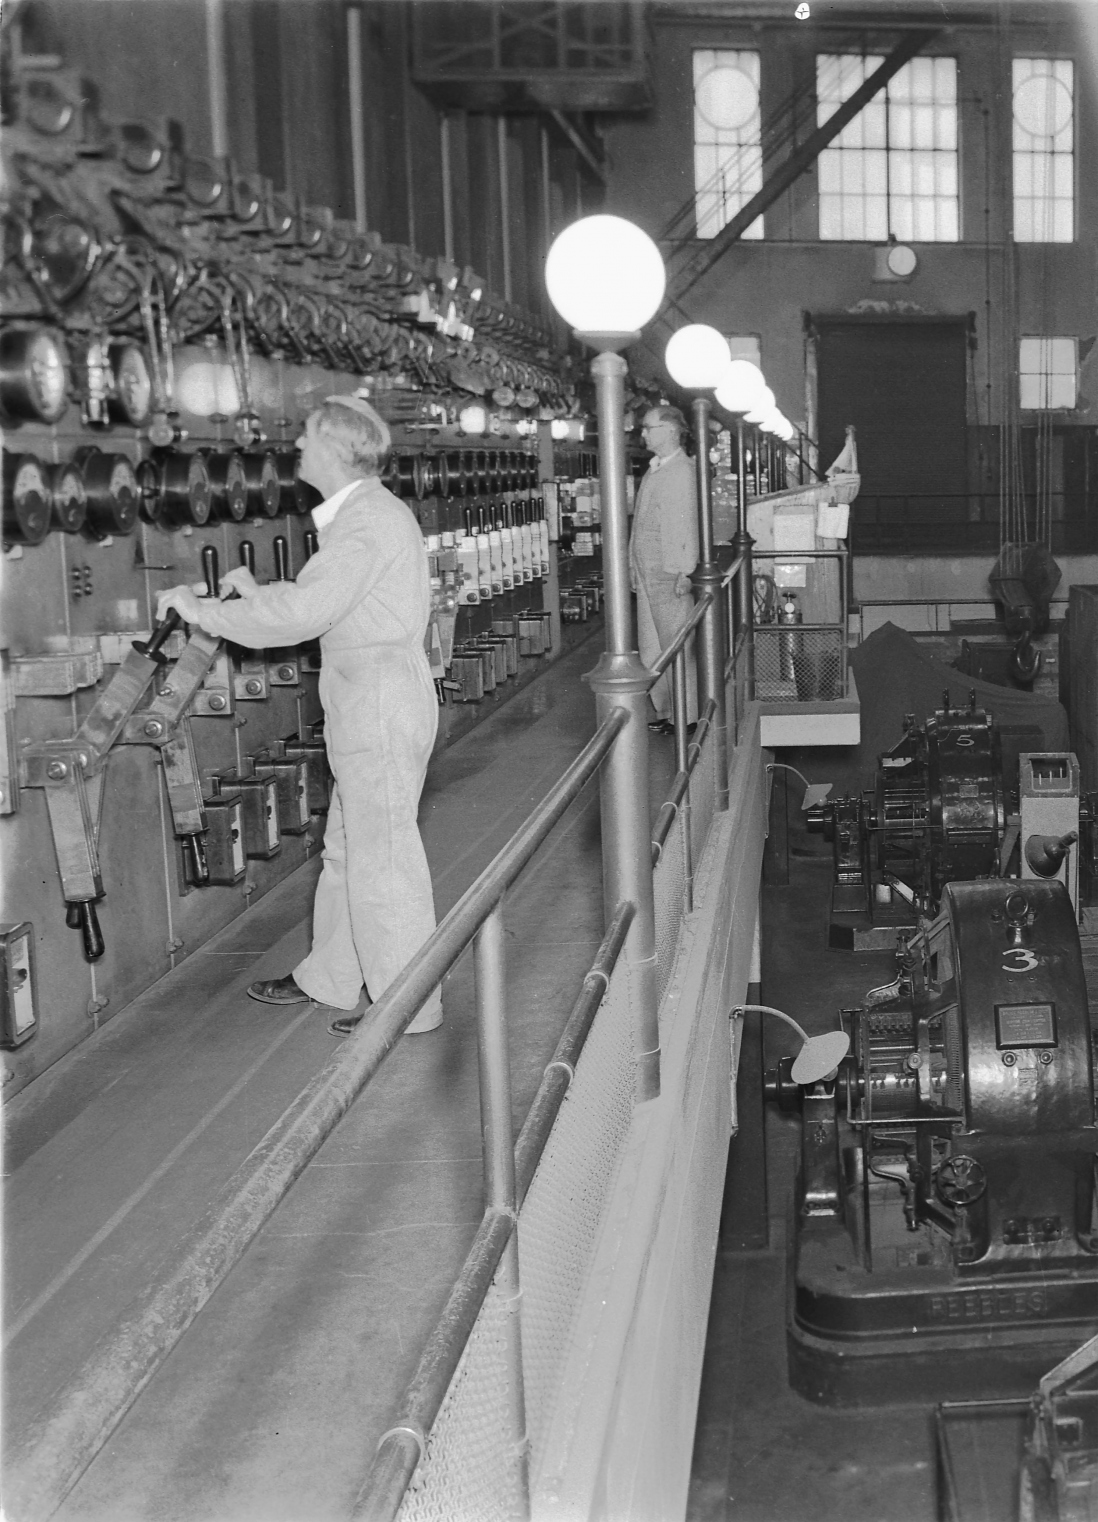 Man operating equipment standing on balcony with railing.